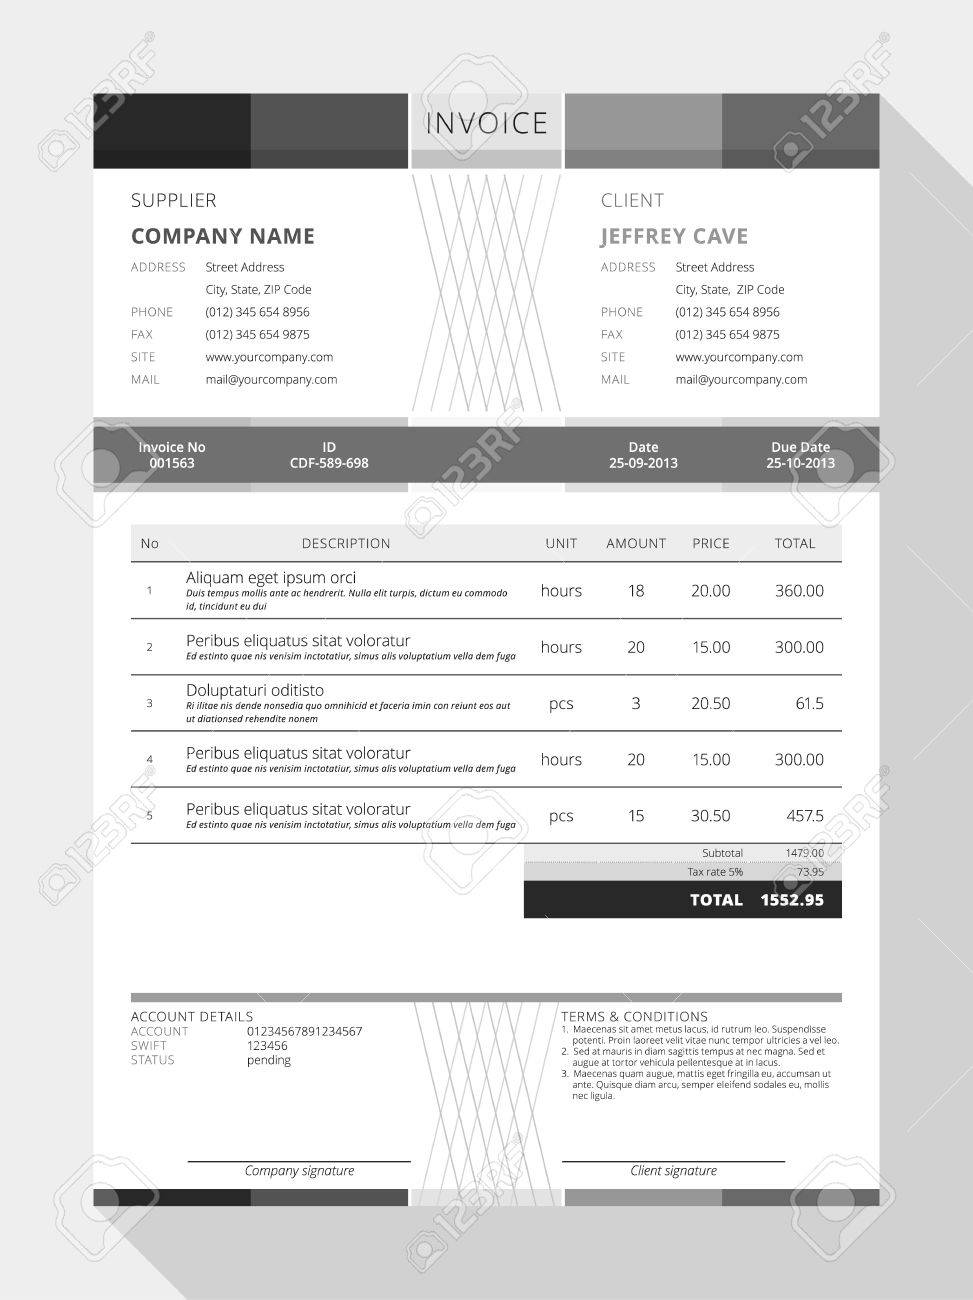 Howcanigettallerus  Winsome Design An Invoice  Professional Graphic Design Invoice  With Heavenly Vector Customizable Invoice Form Template Design Vector   Design An Invoice With Delectable Hillstone Invoice Manager Also Excel Sample Invoice In Addition Invoice Vat And Sme Invoice Finance As Well As Invoice Bills Additionally Proforma Invoice Template Word Doc From Happytomco With Howcanigettallerus  Heavenly Design An Invoice  Professional Graphic Design Invoice  With Delectable Vector Customizable Invoice Form Template Design Vector   Design An Invoice And Winsome Hillstone Invoice Manager Also Excel Sample Invoice In Addition Invoice Vat From Happytomco